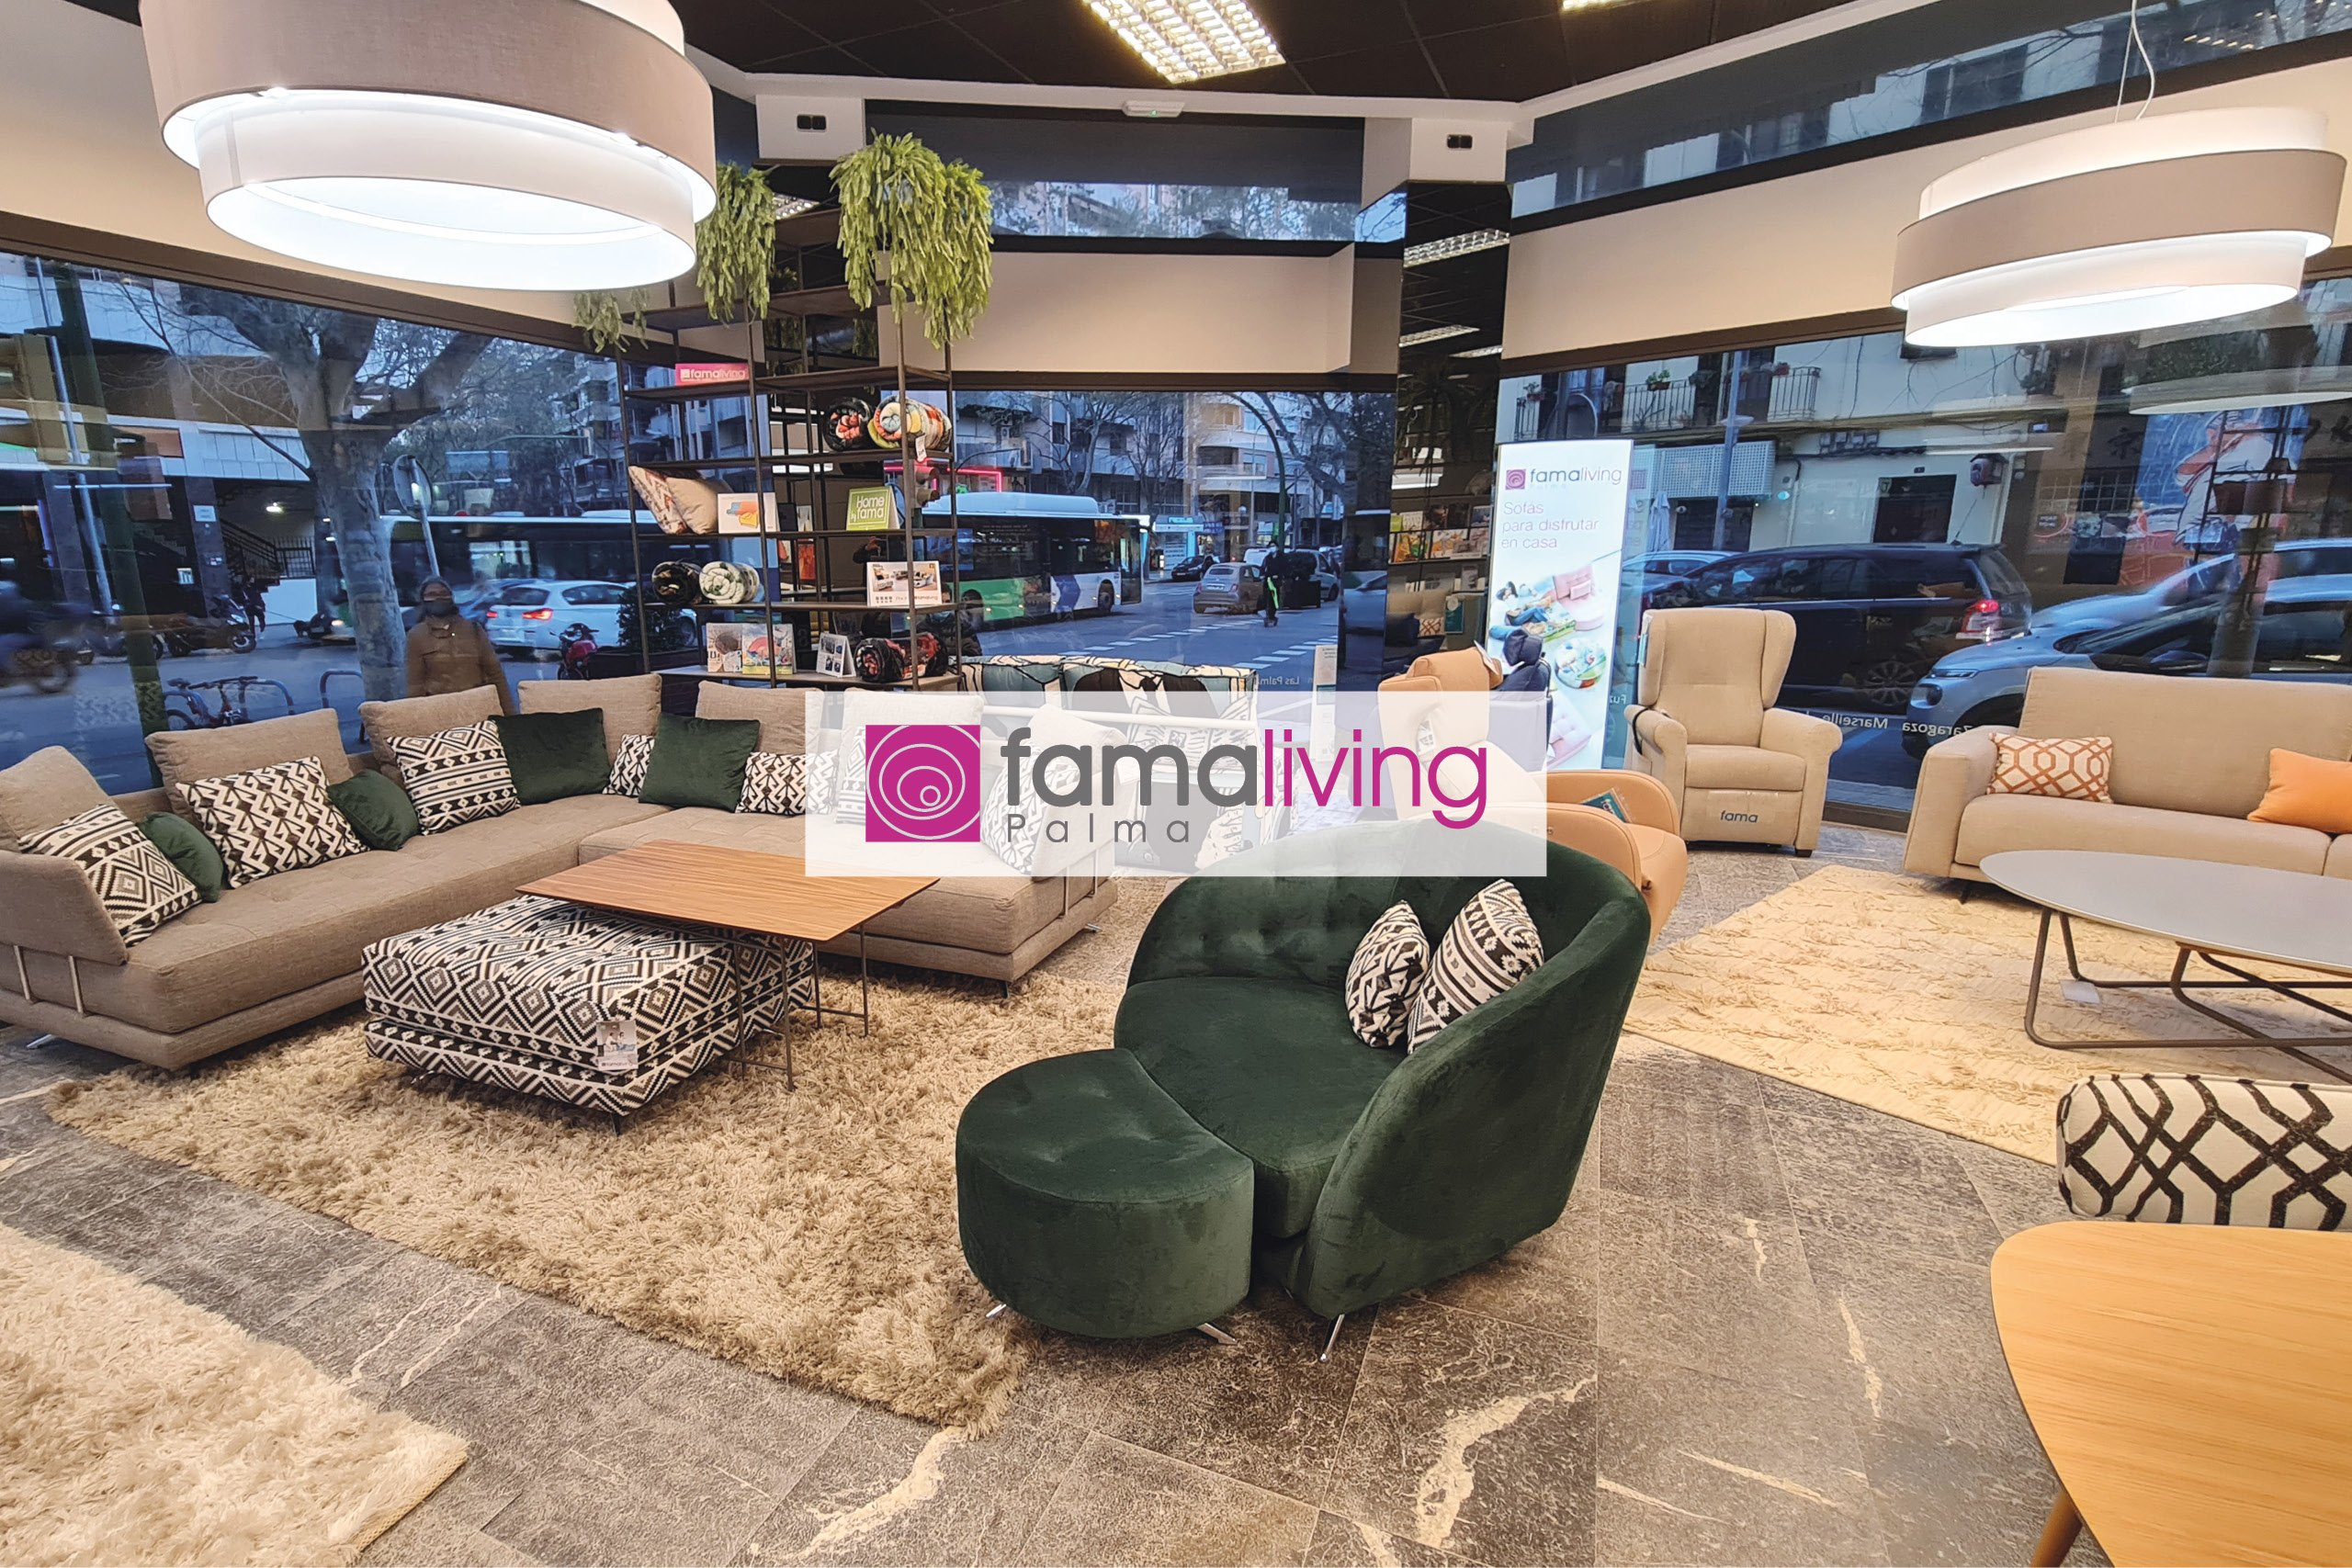 https://www.famaliving.com/palma-en